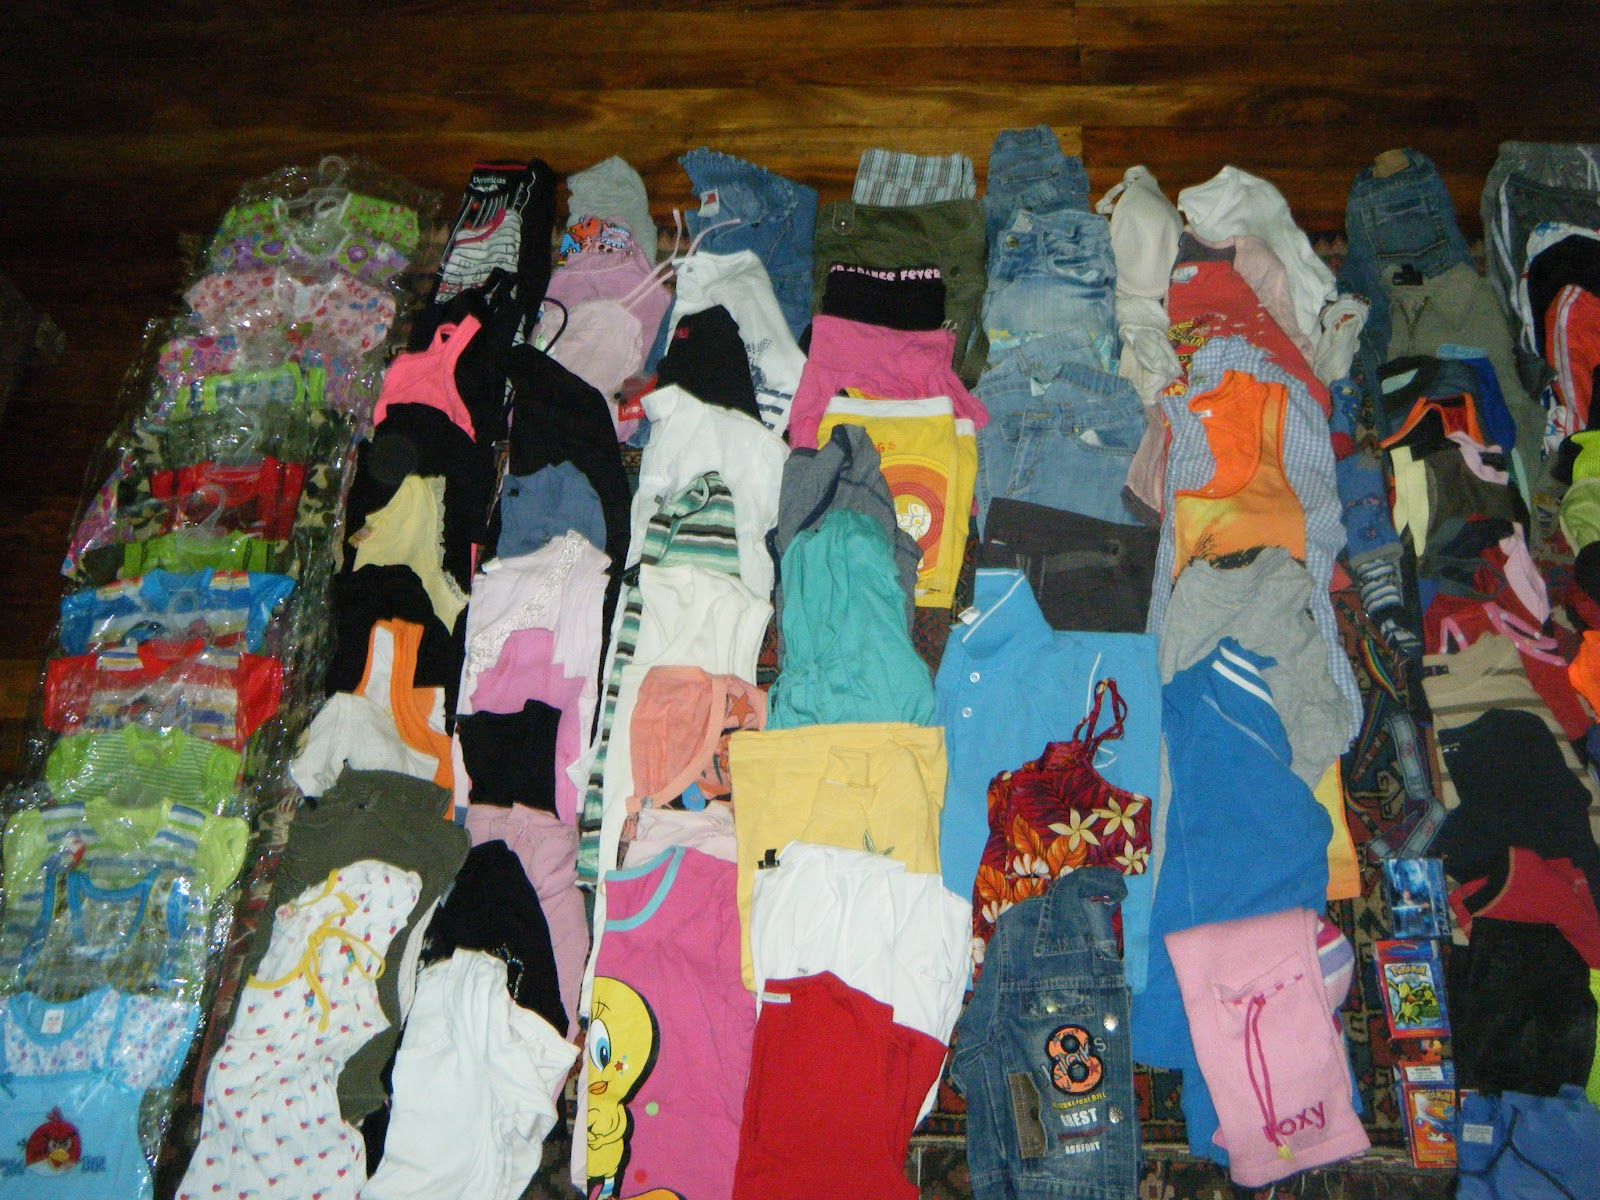 ... was able to buy about 100 pairs of adult and kids thongs / flip-flops